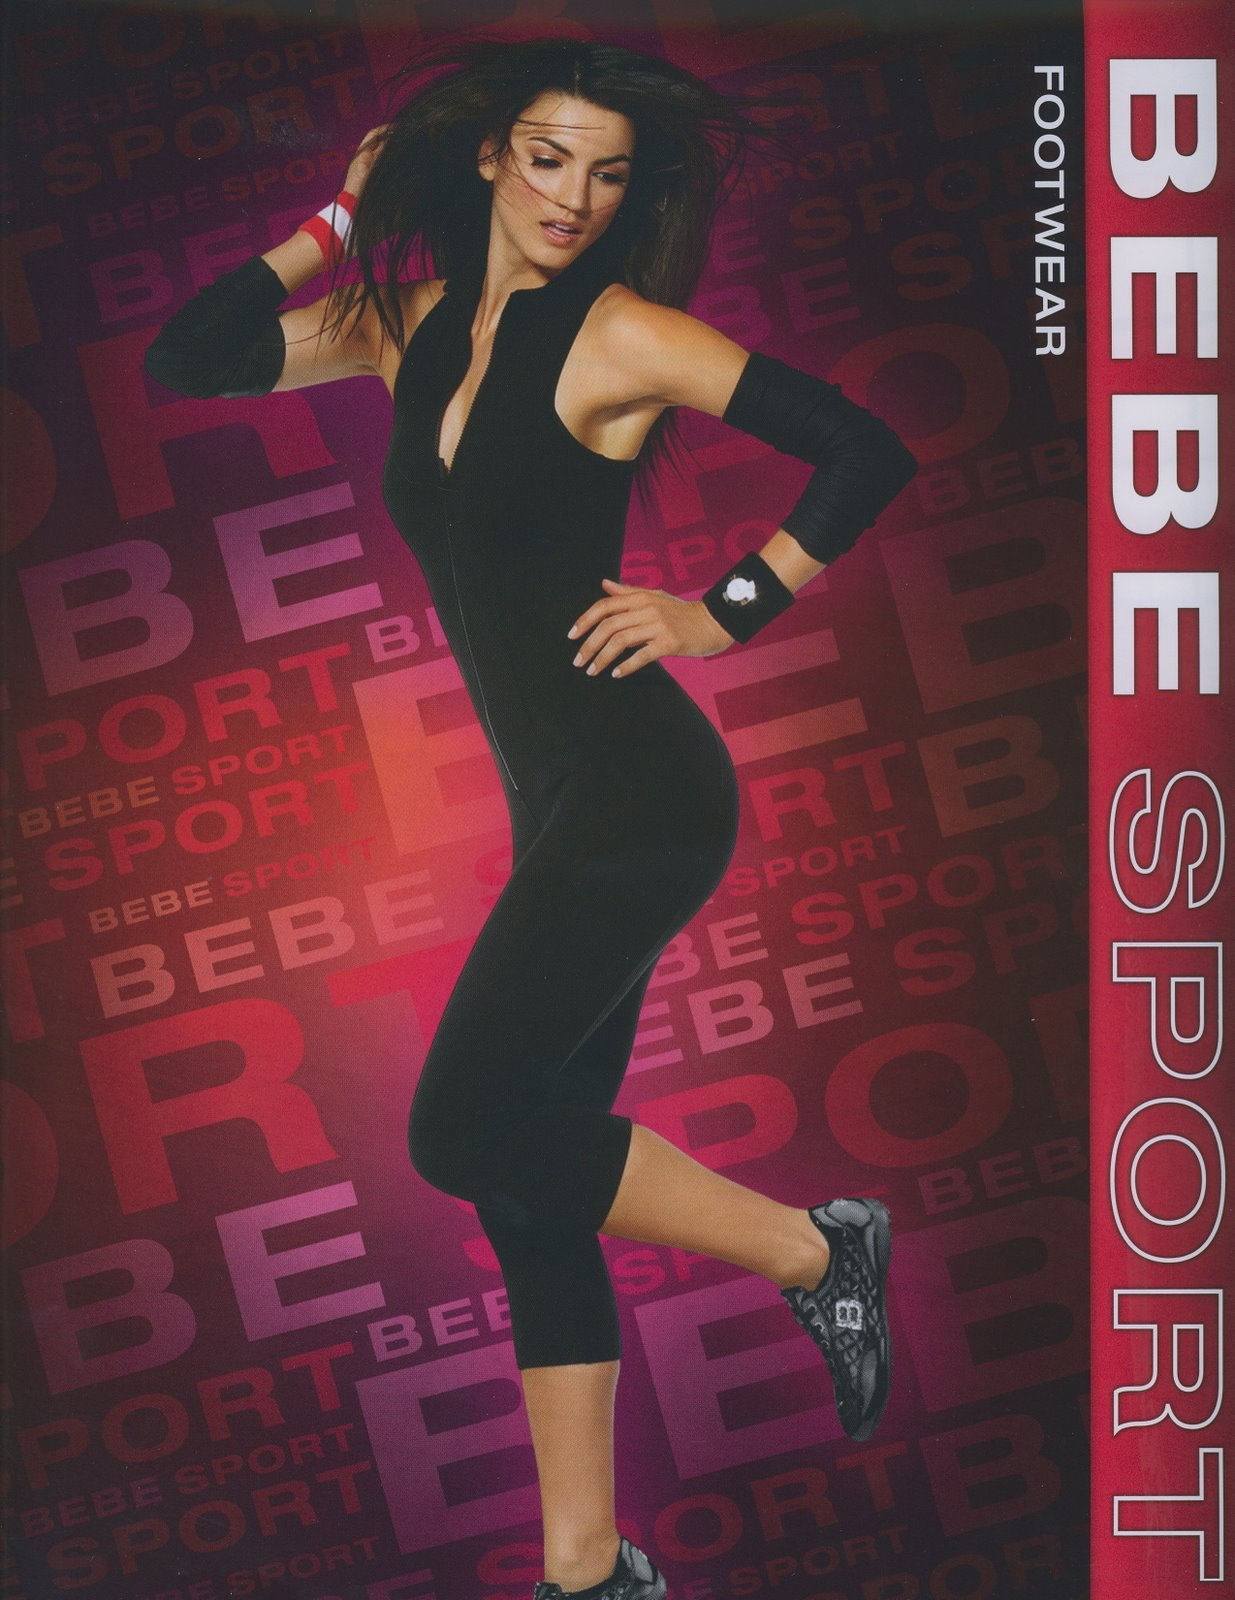 BEBE Sport